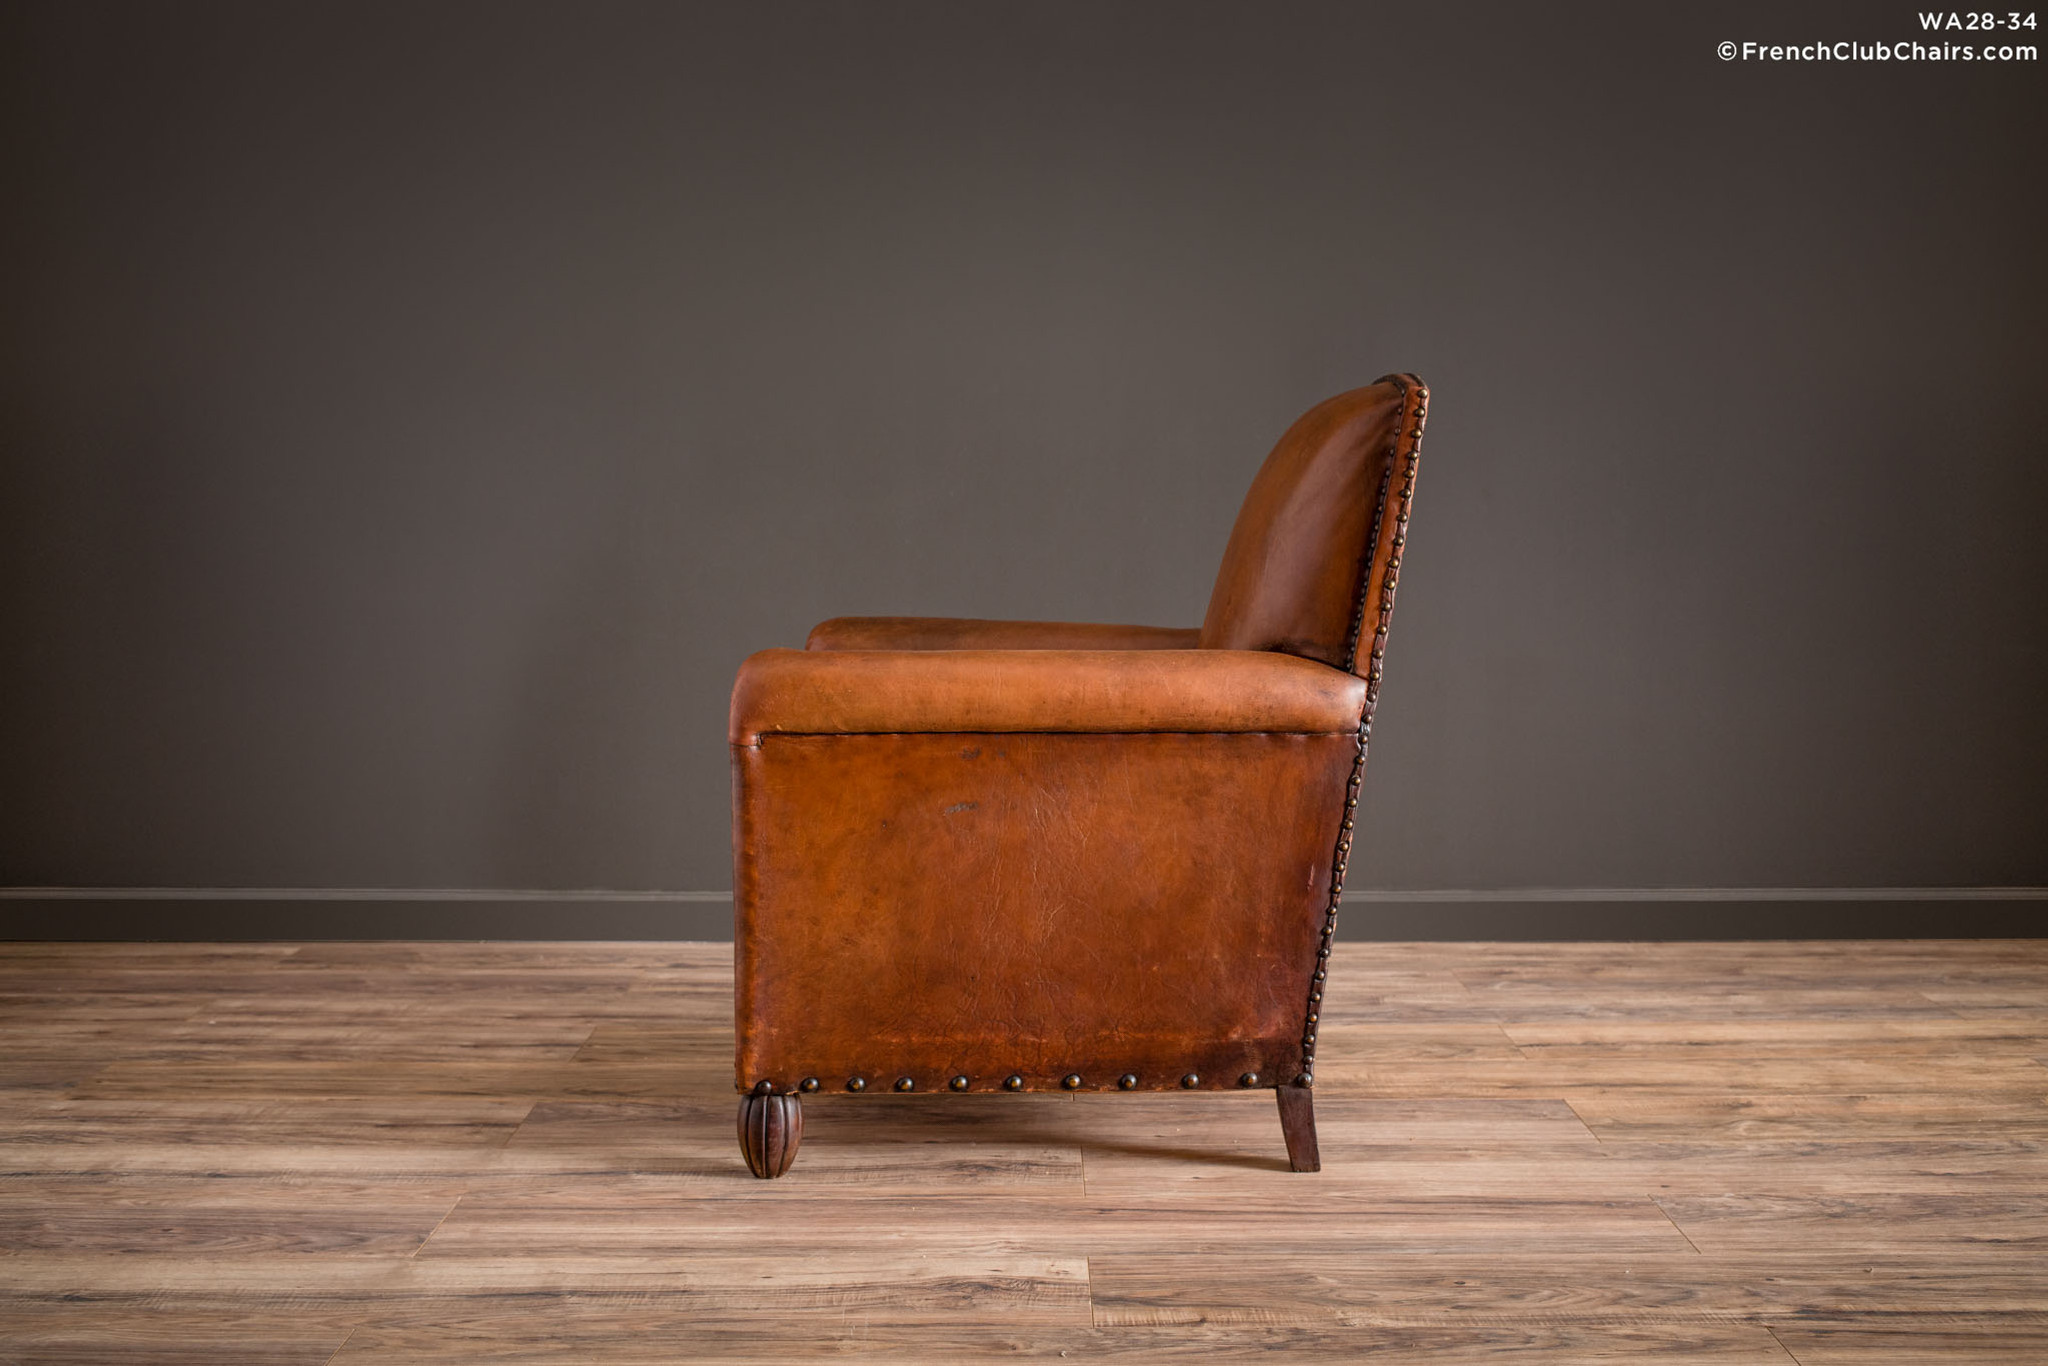 Vintage French Club Chair - Moutenee Library Solo